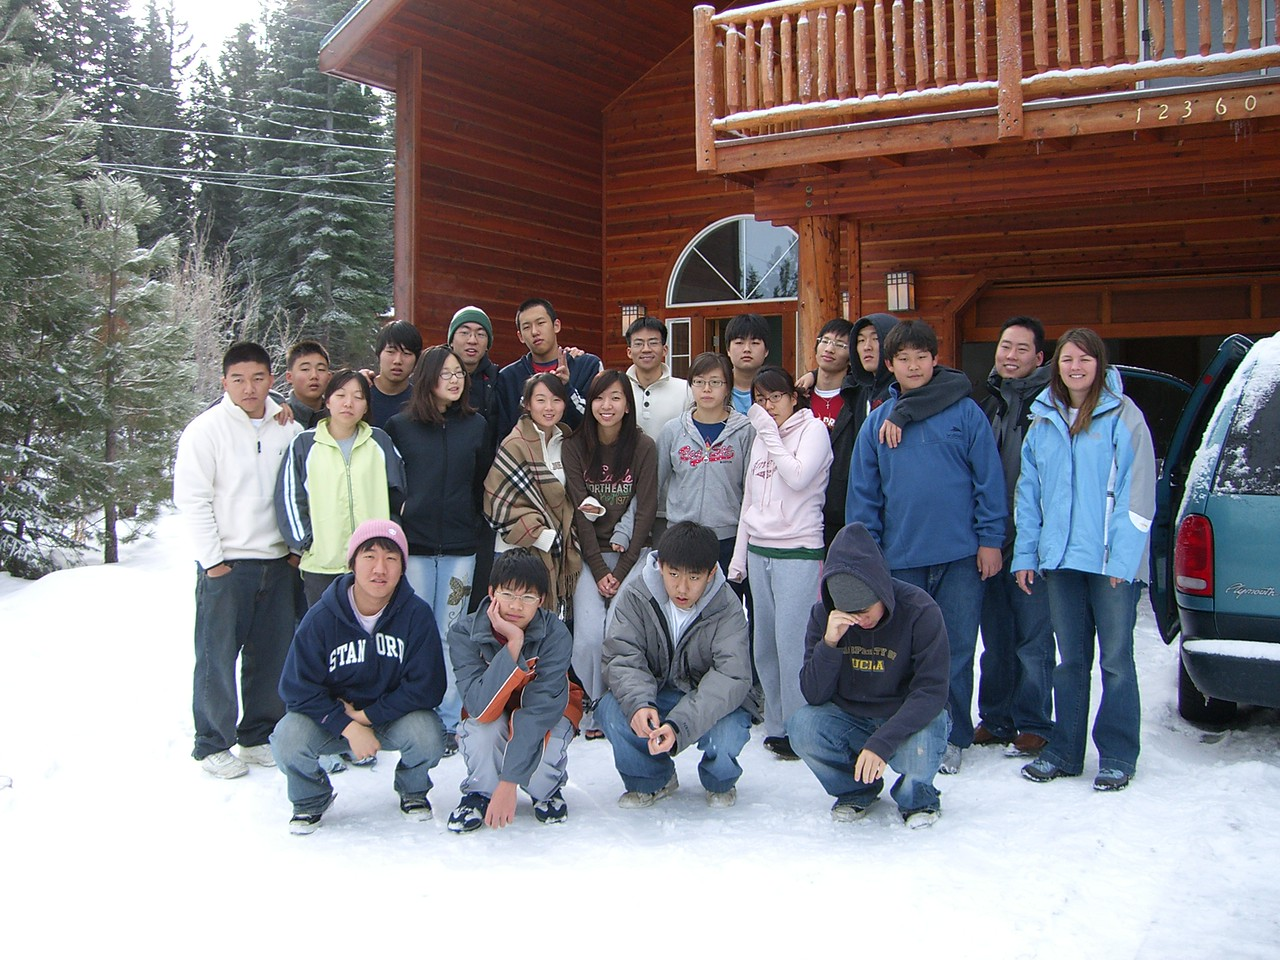 2005 12 29 Thu - End of retreat group pic 2